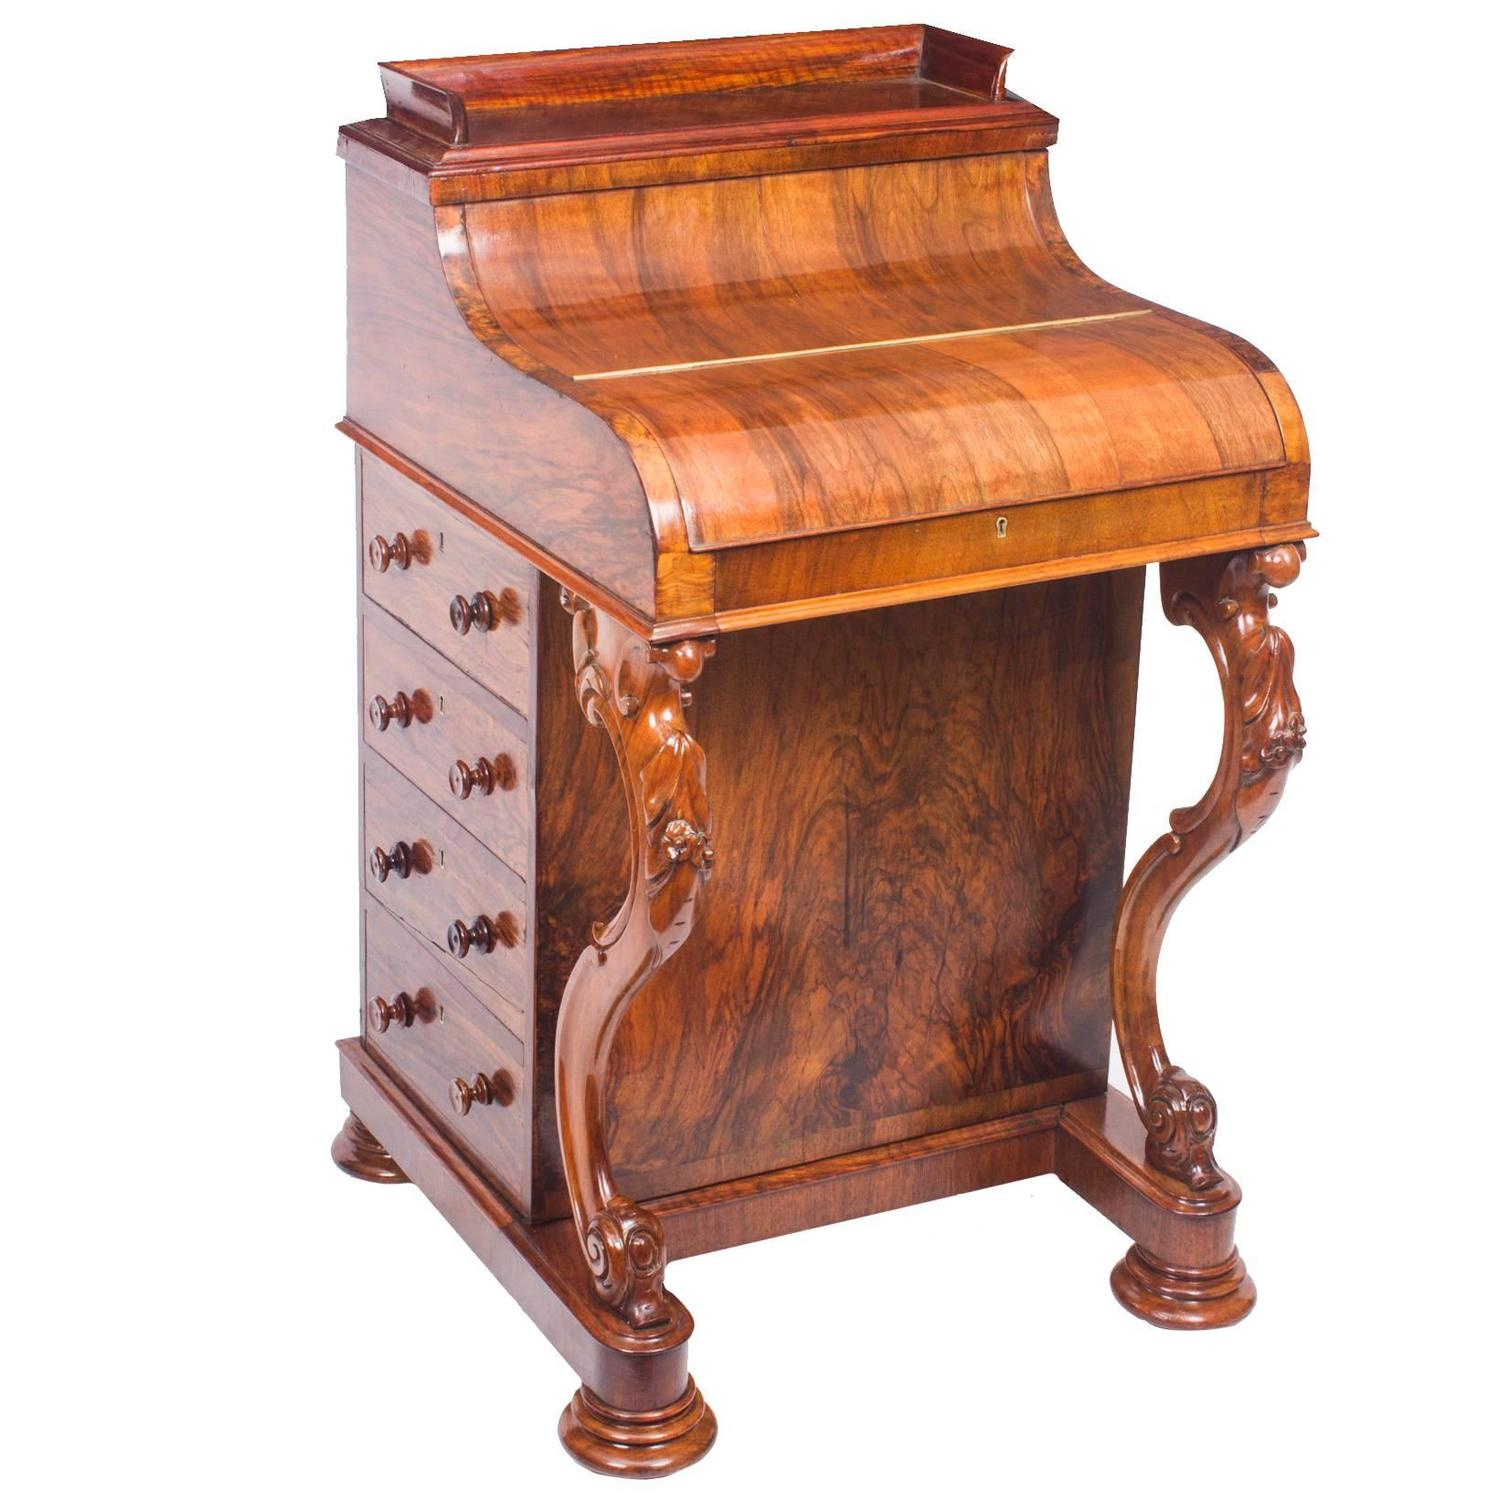 - 19th Century Burr Walnut Pop Up Davenport Desk For Sale At 1stdibs